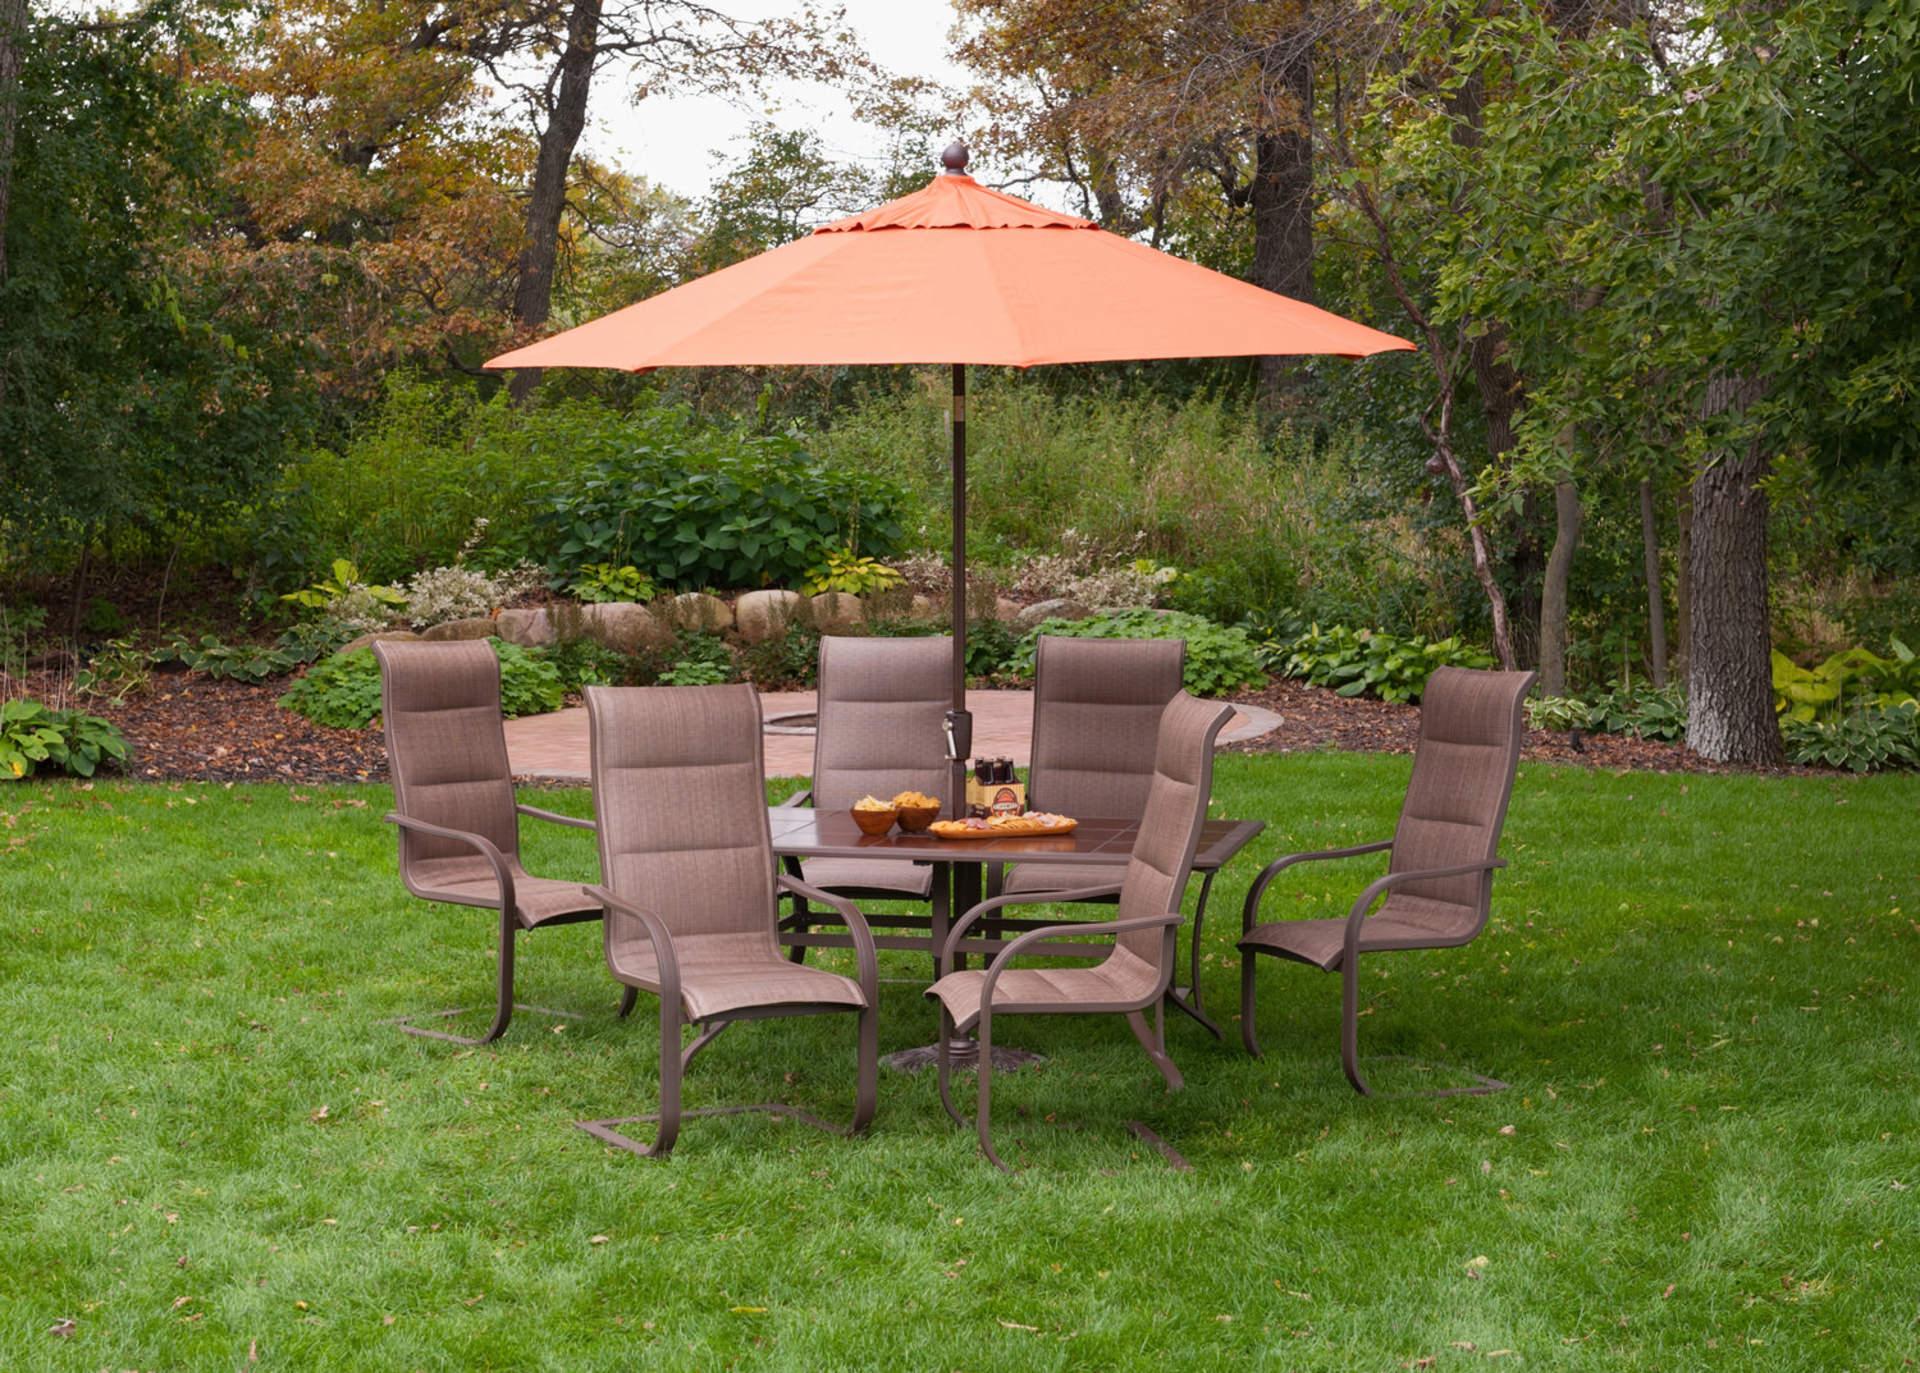 Top 10 tips for patio design